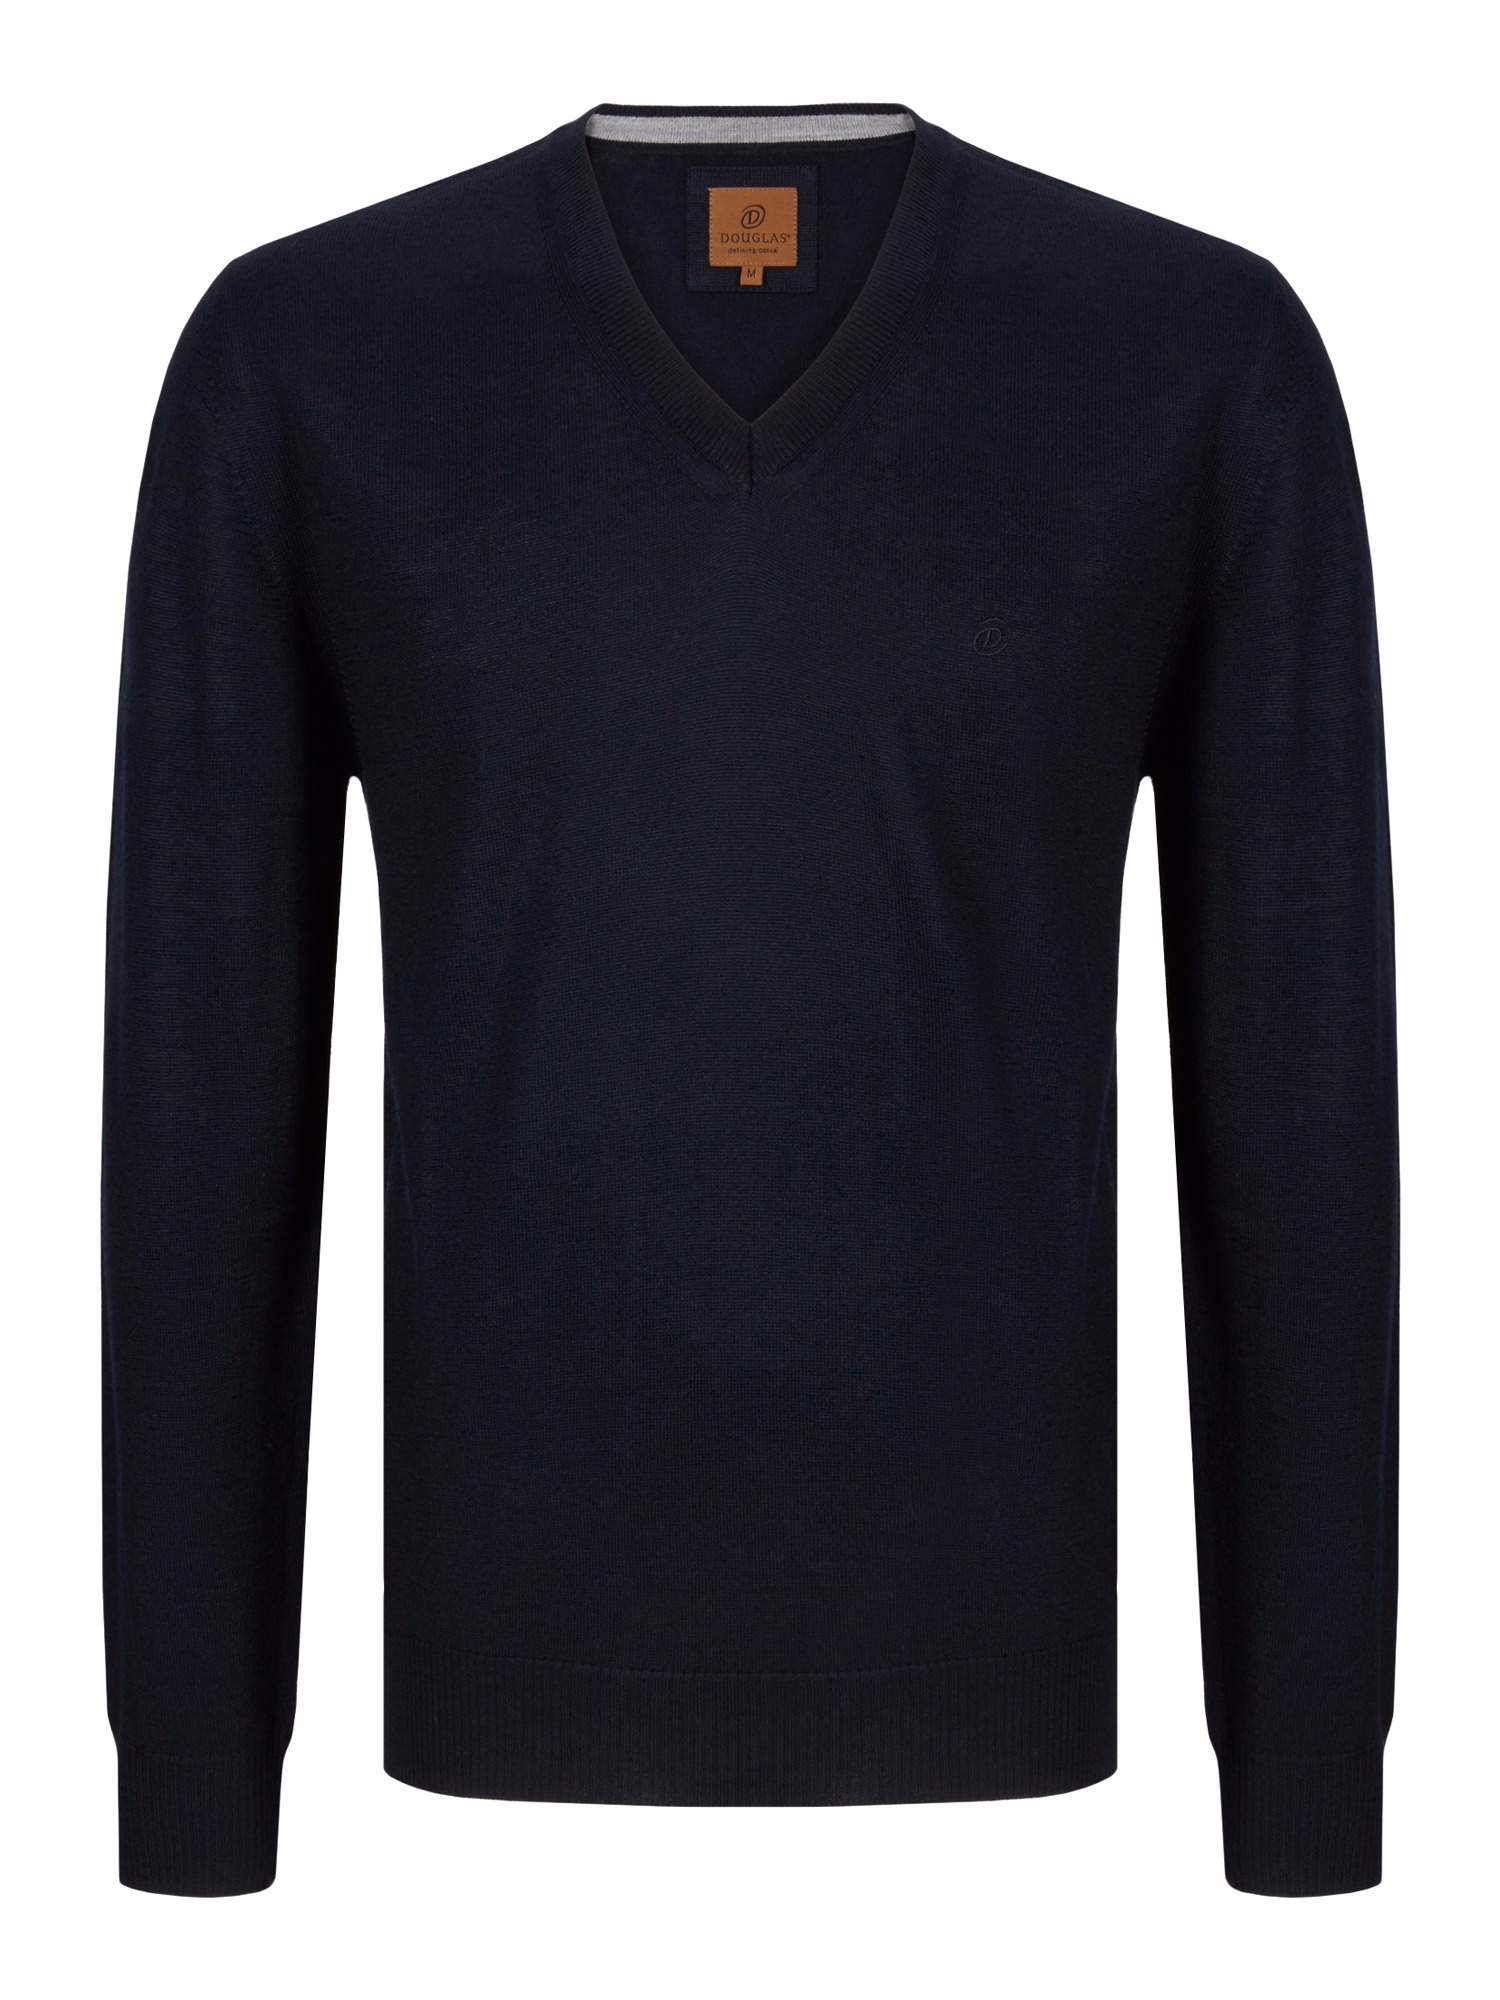 Douglas Navy V Neck Knit Sweater